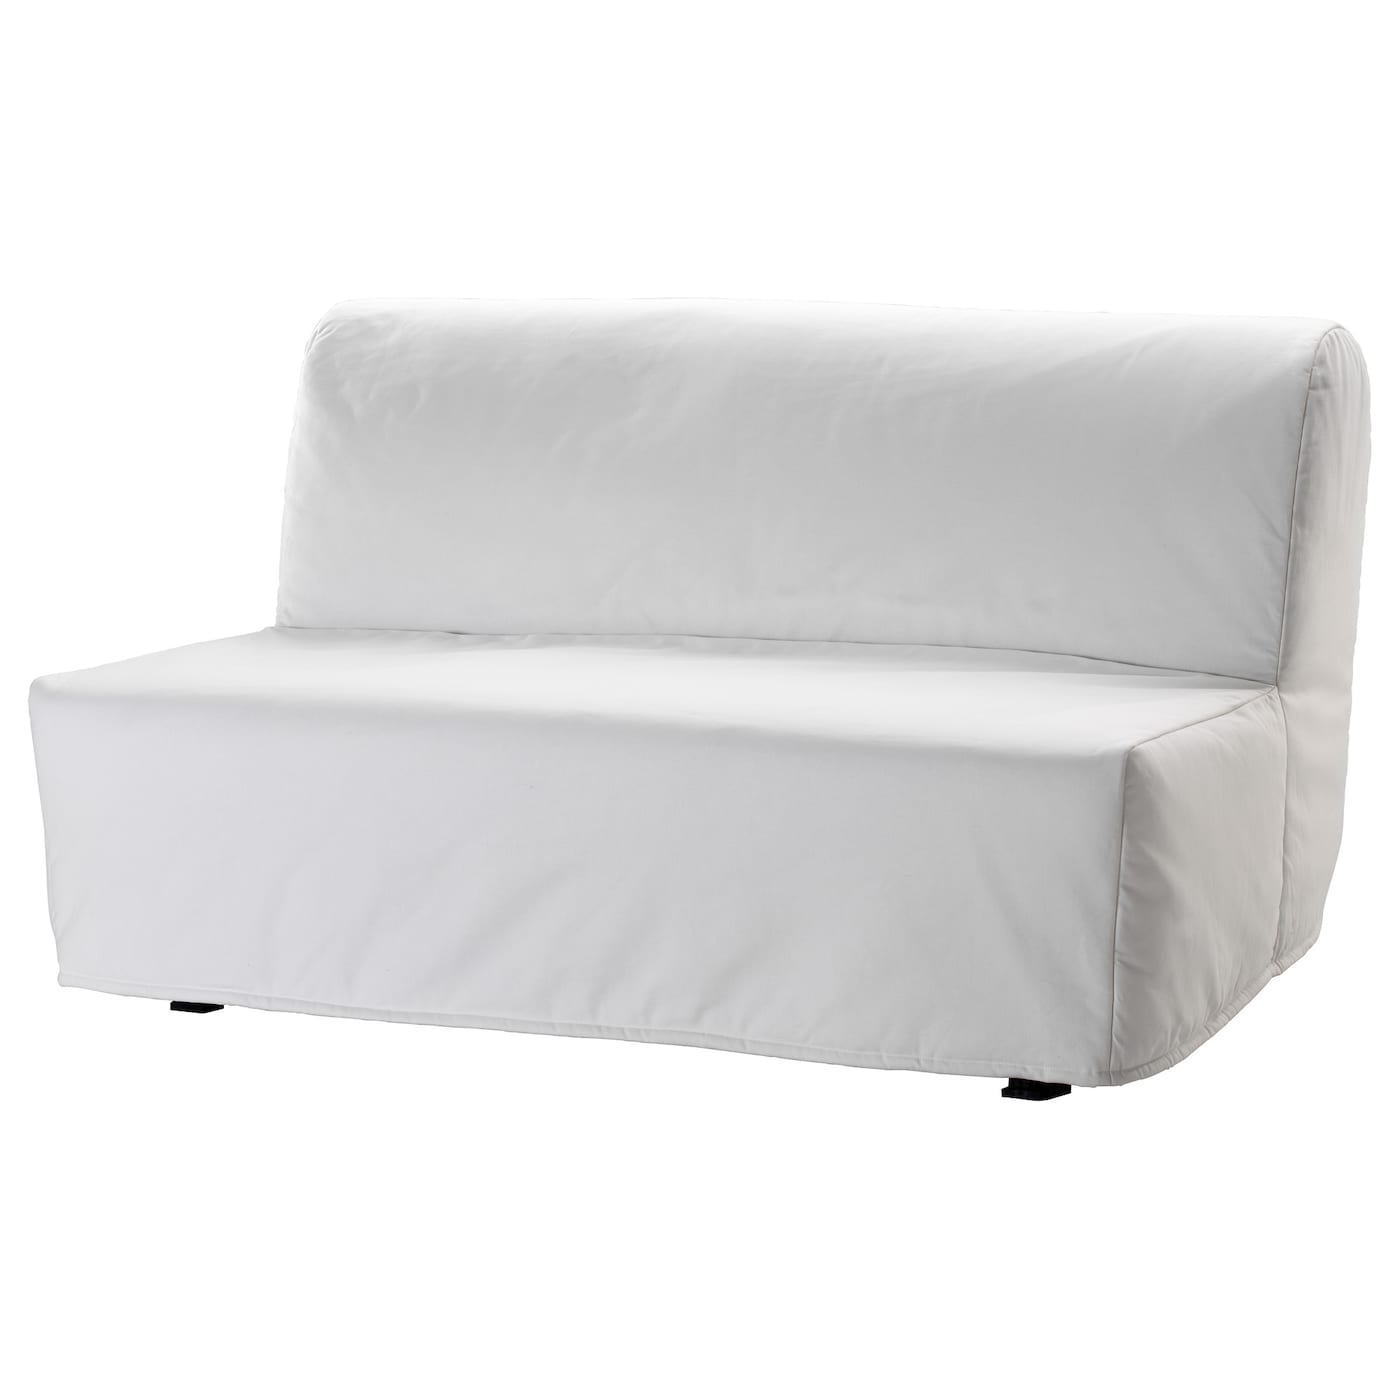 Lycksele havet two seat sofa bed ransta white ikea for Sofa bed no mattress